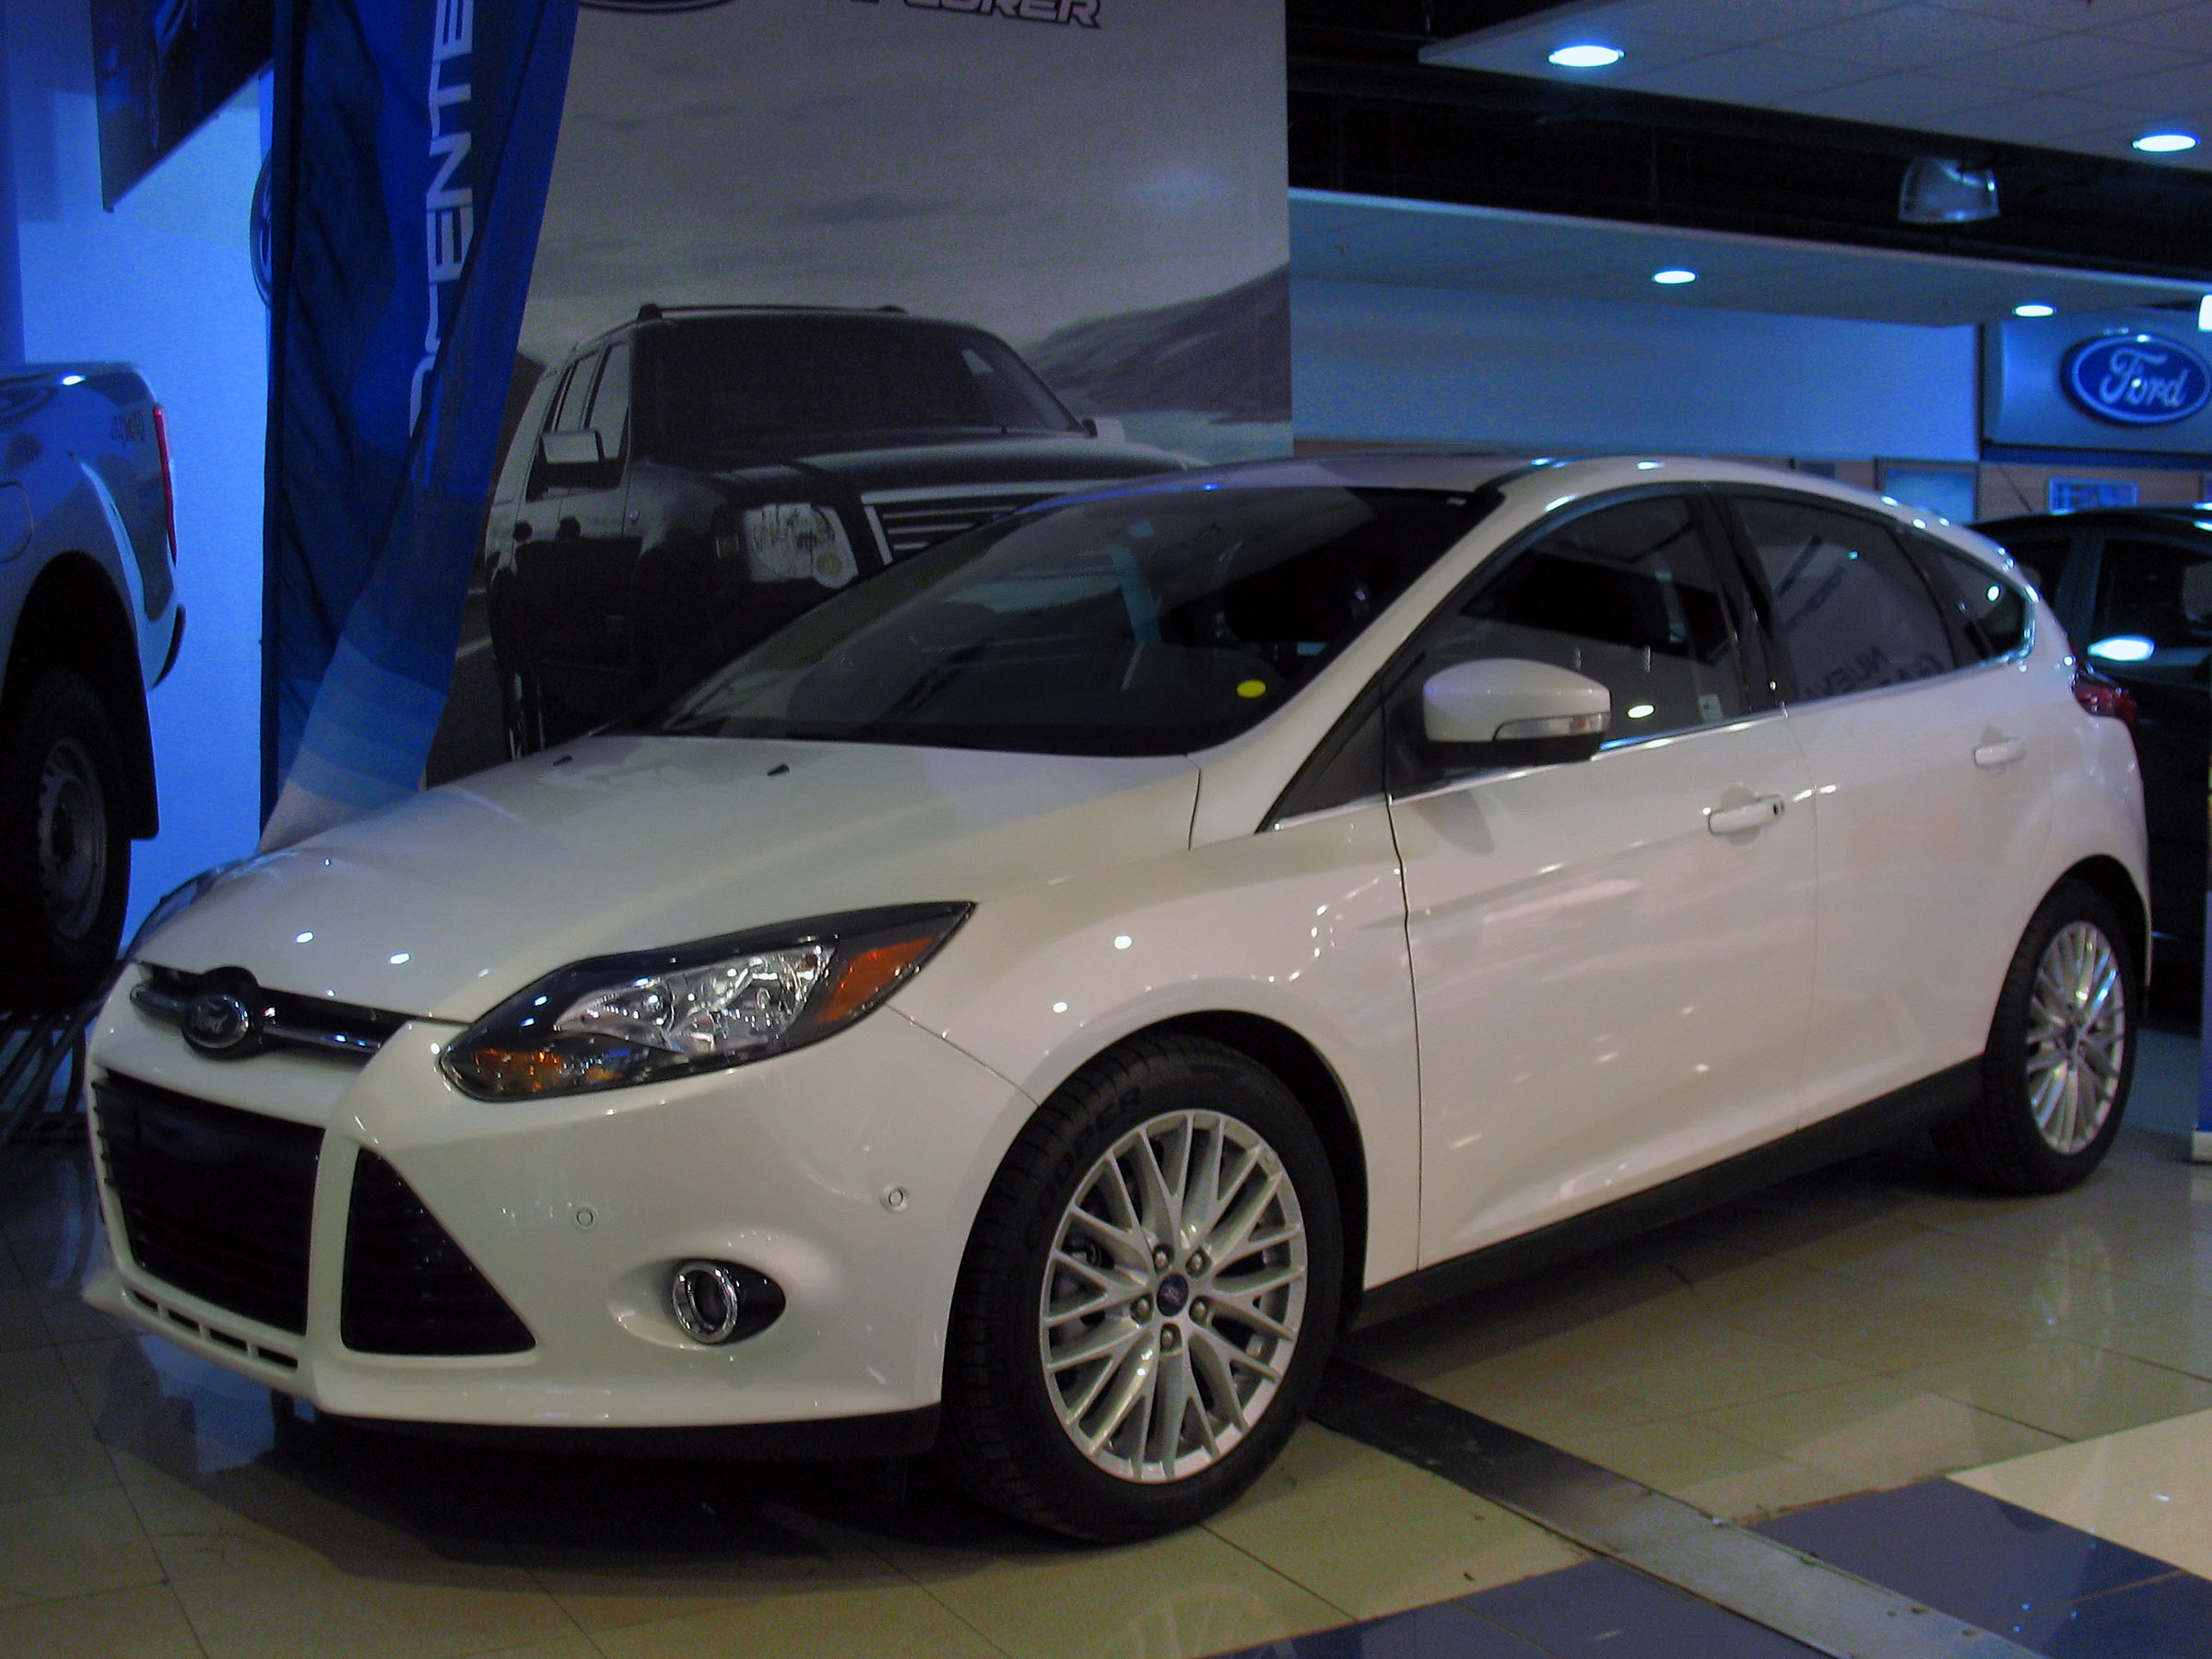 Ford Focus 2.0 2013 photo - 1